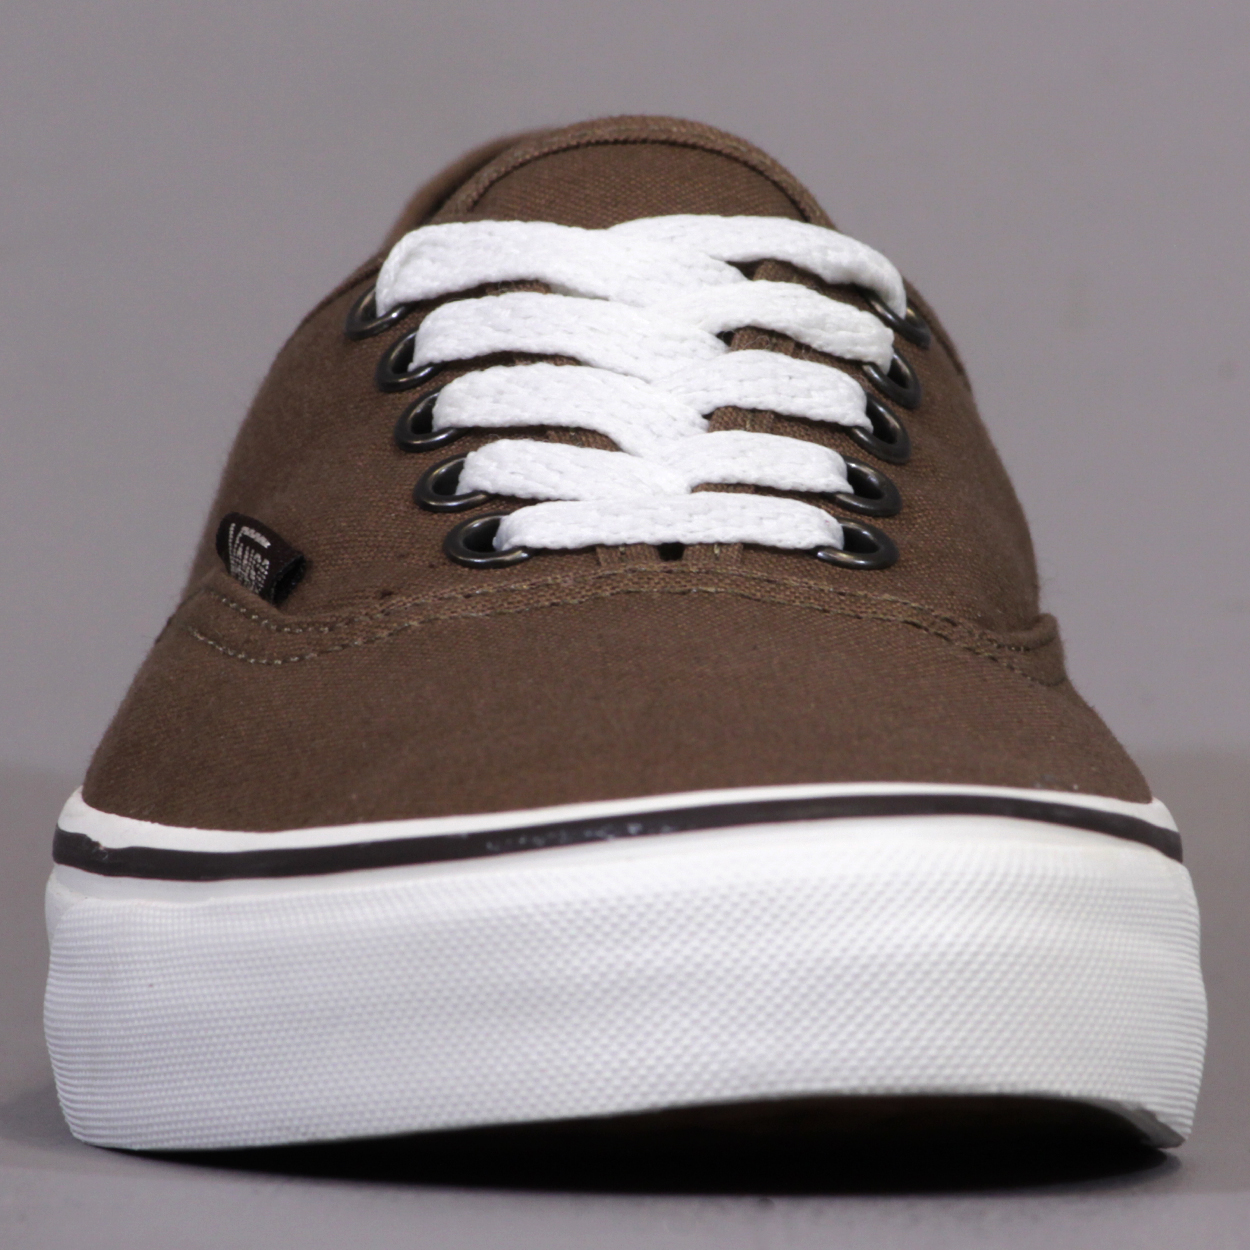 156f37f262 Vans Mens Authentic Trainers Sepia Marshmallow Waffle Grip Sole £36.00